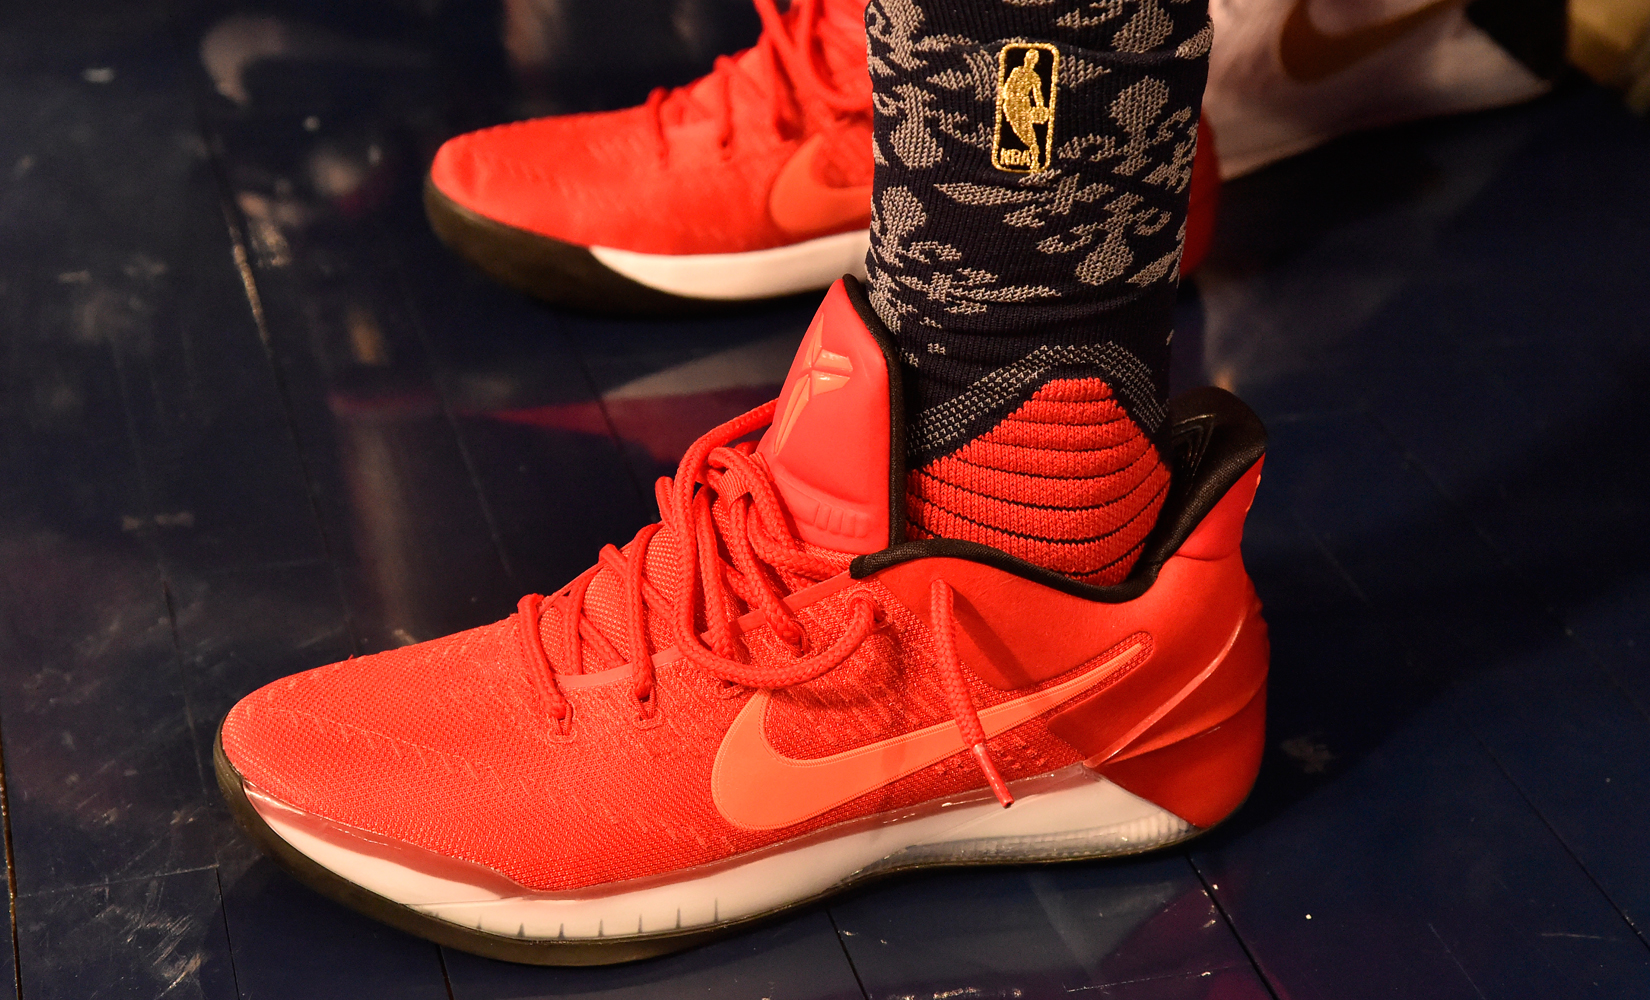 Worn by John Wall at the NBA Skills Challenge